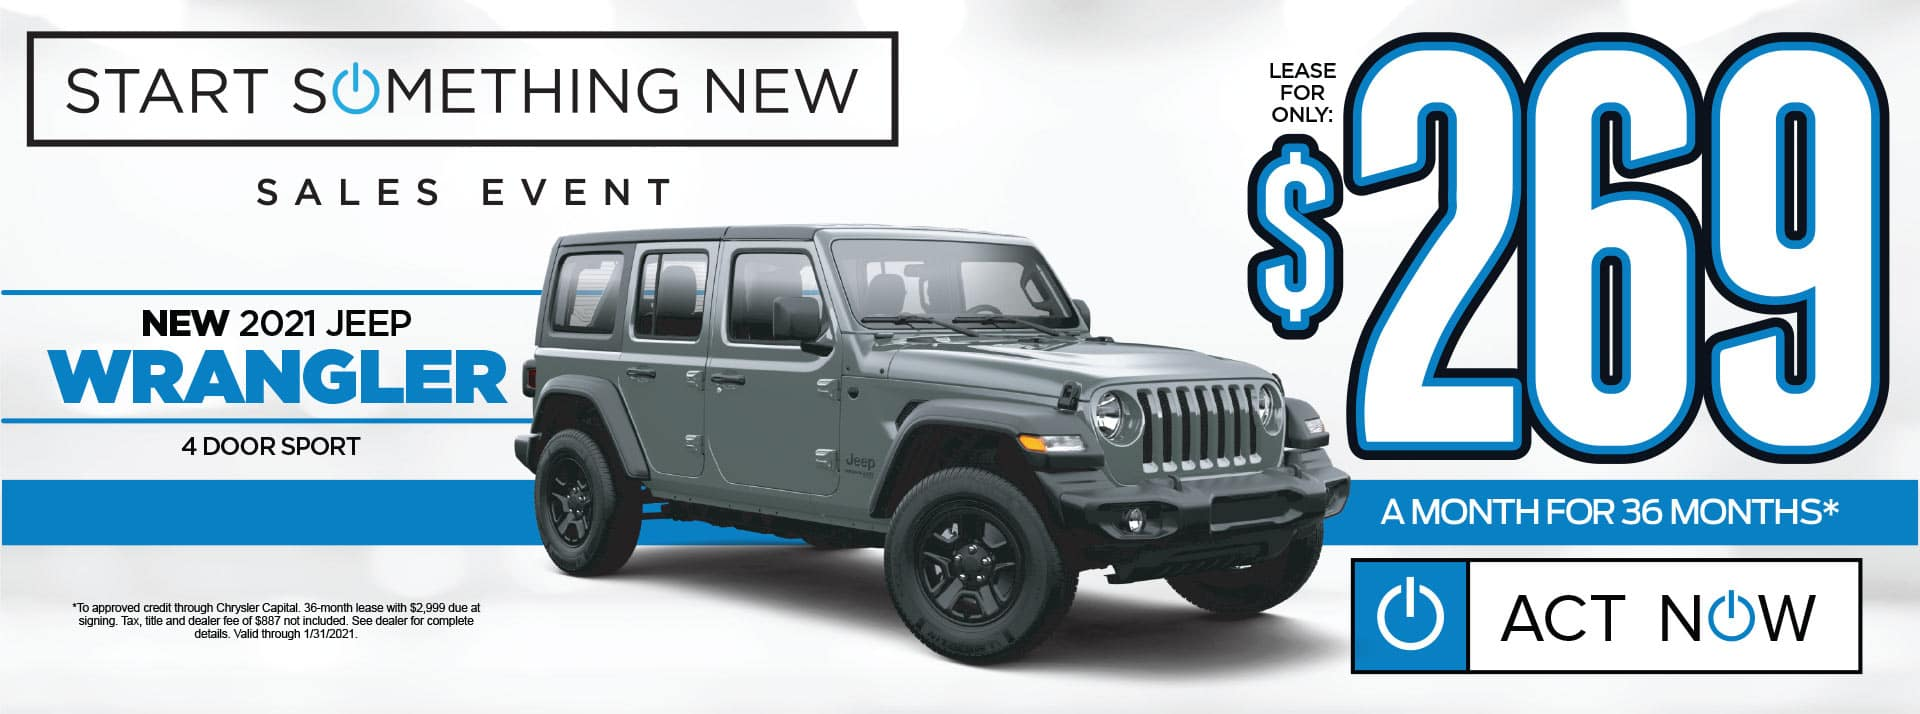 NEW 2021 JEEP WRANGLER LEASE FOR $269/MO* SHOP NOW